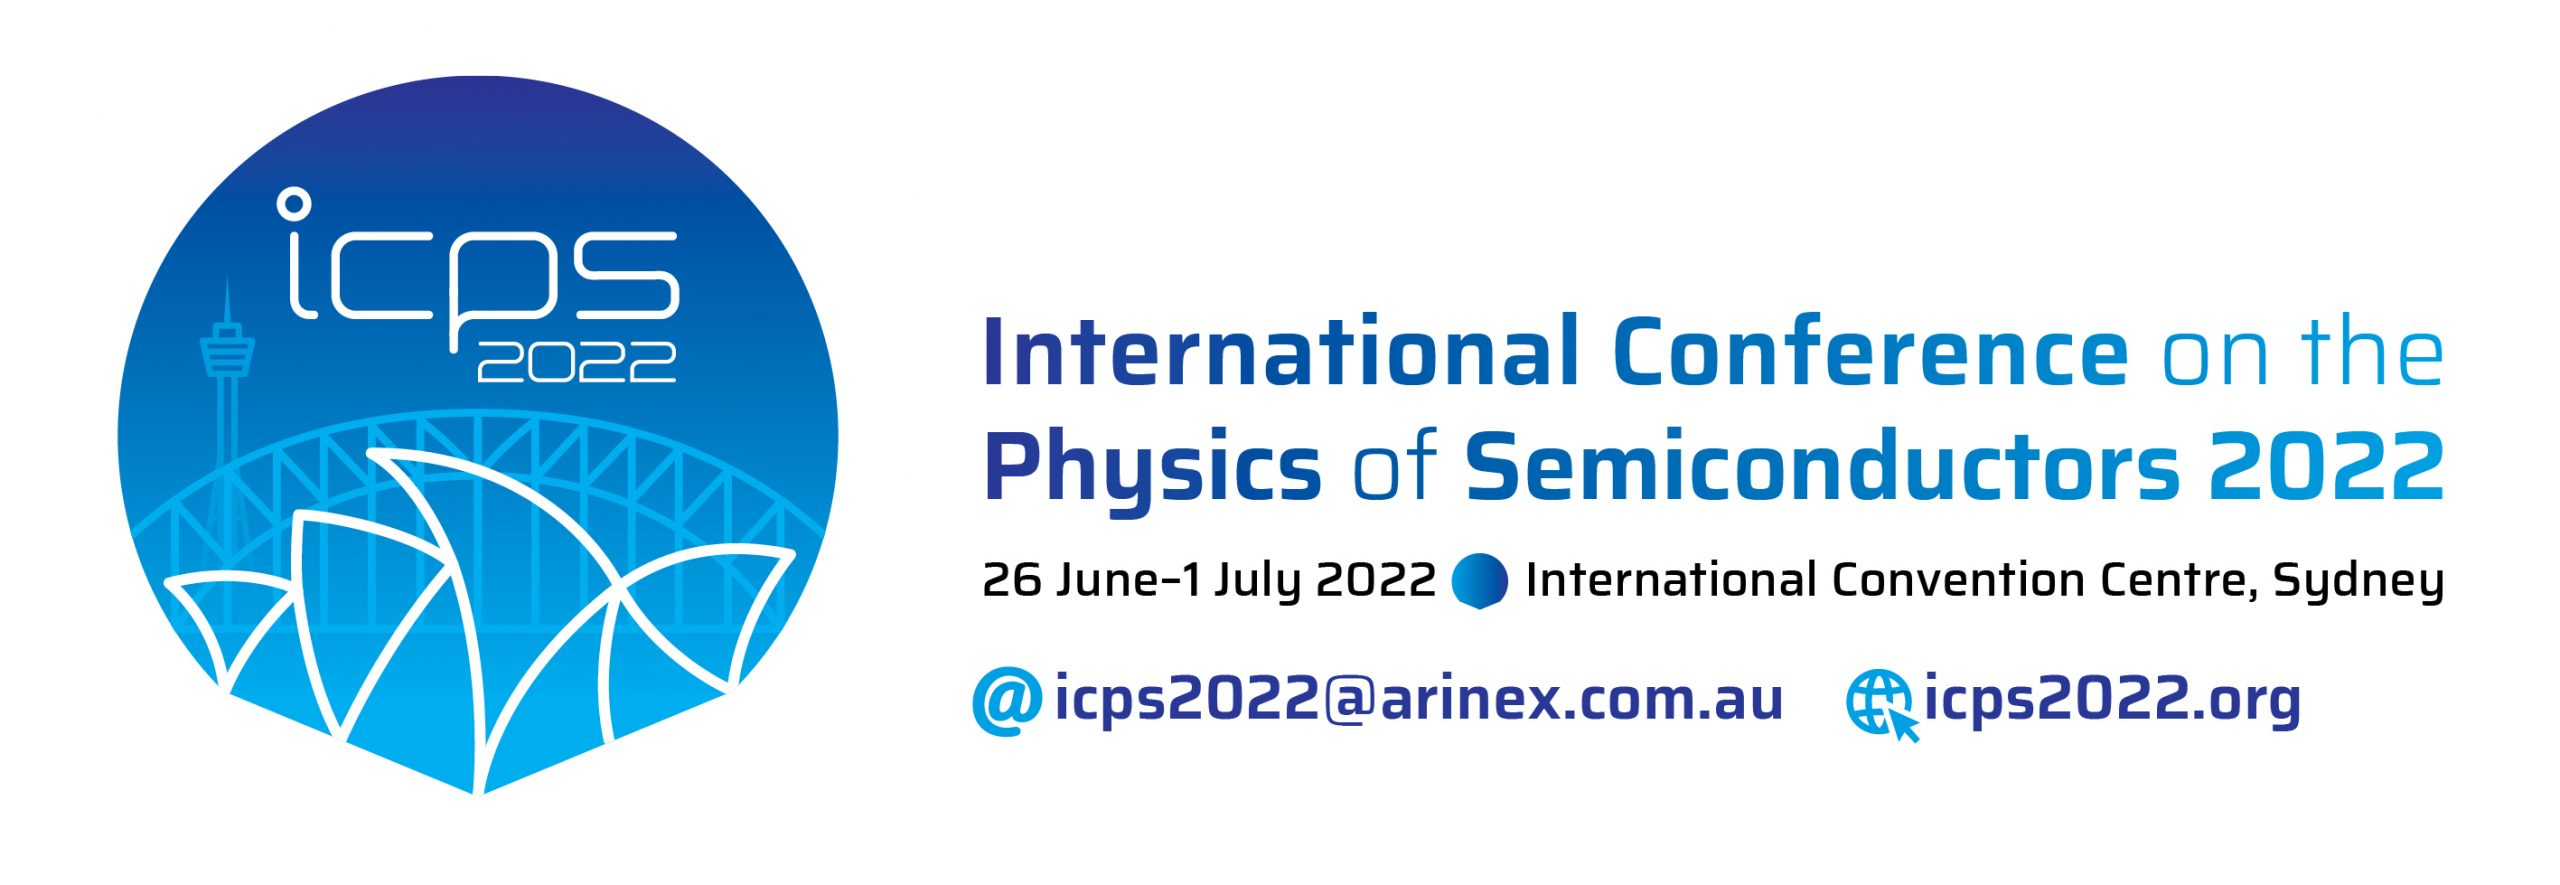 Congress Calendar 2022.Icps 2022 International Conference On The Physics Of Semiconductors 2022 26 June 01 July 2022 International Convention Centre Sydney Australia